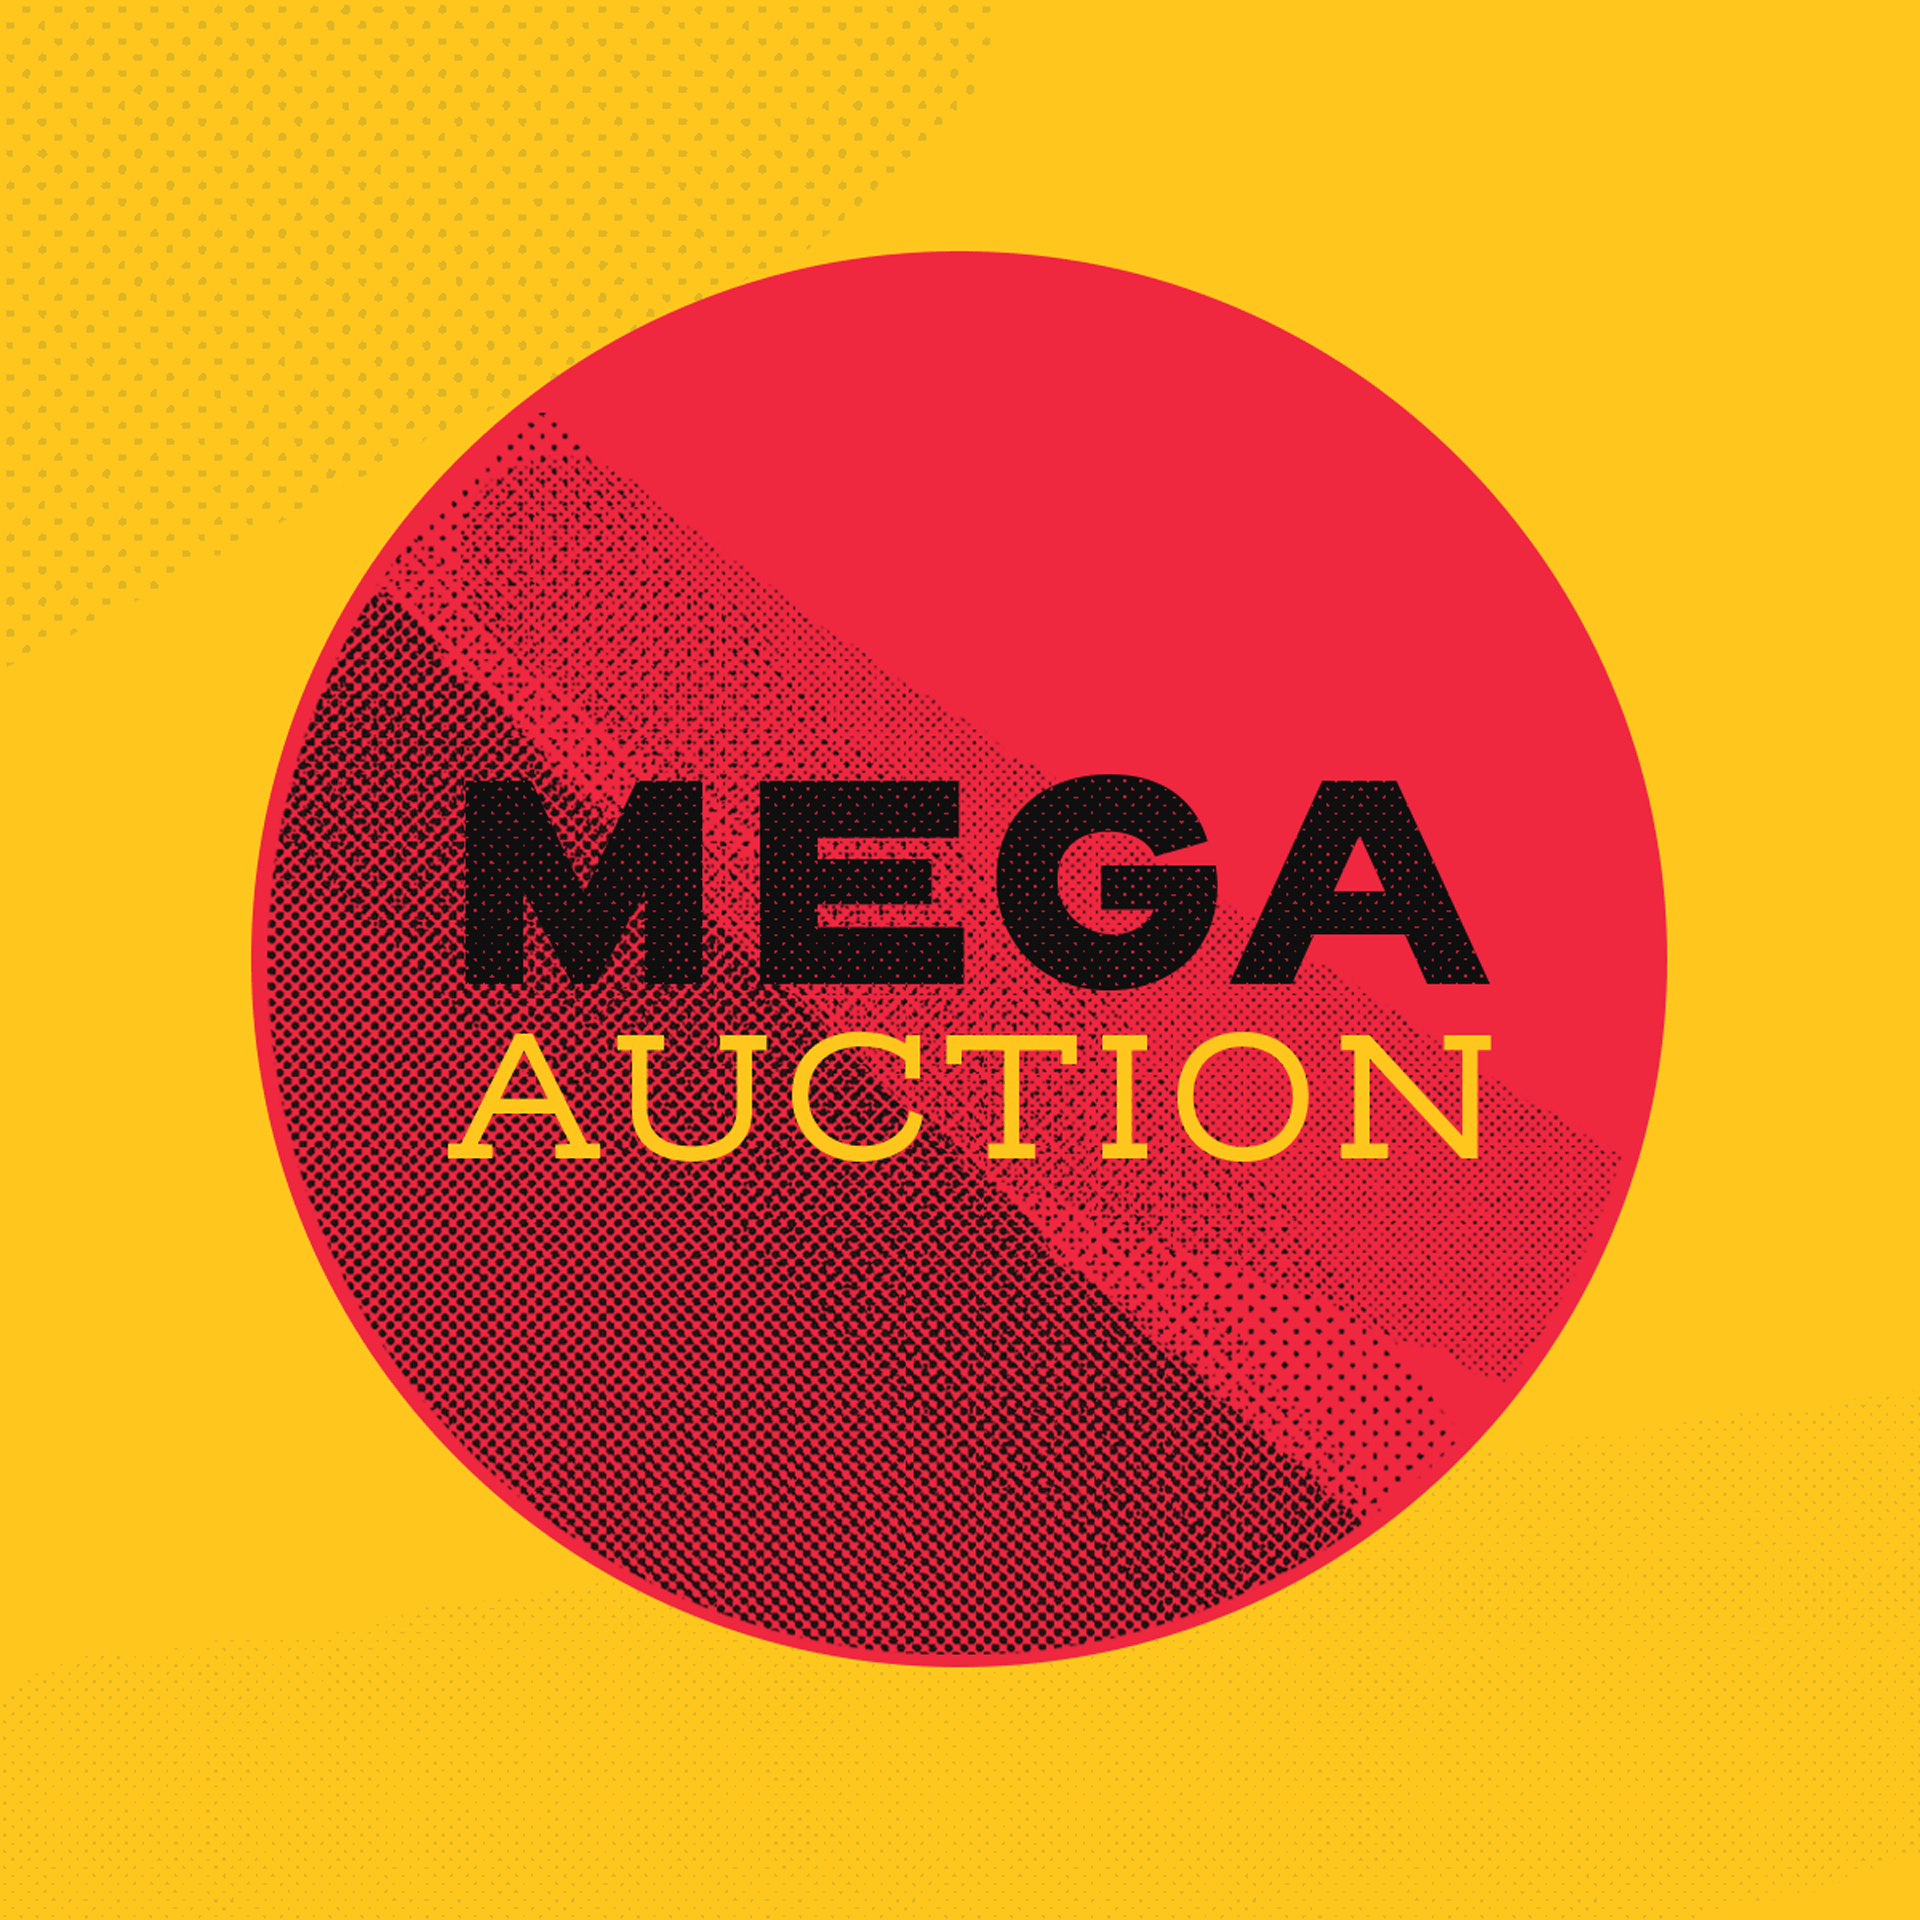 mega_auction_square.png